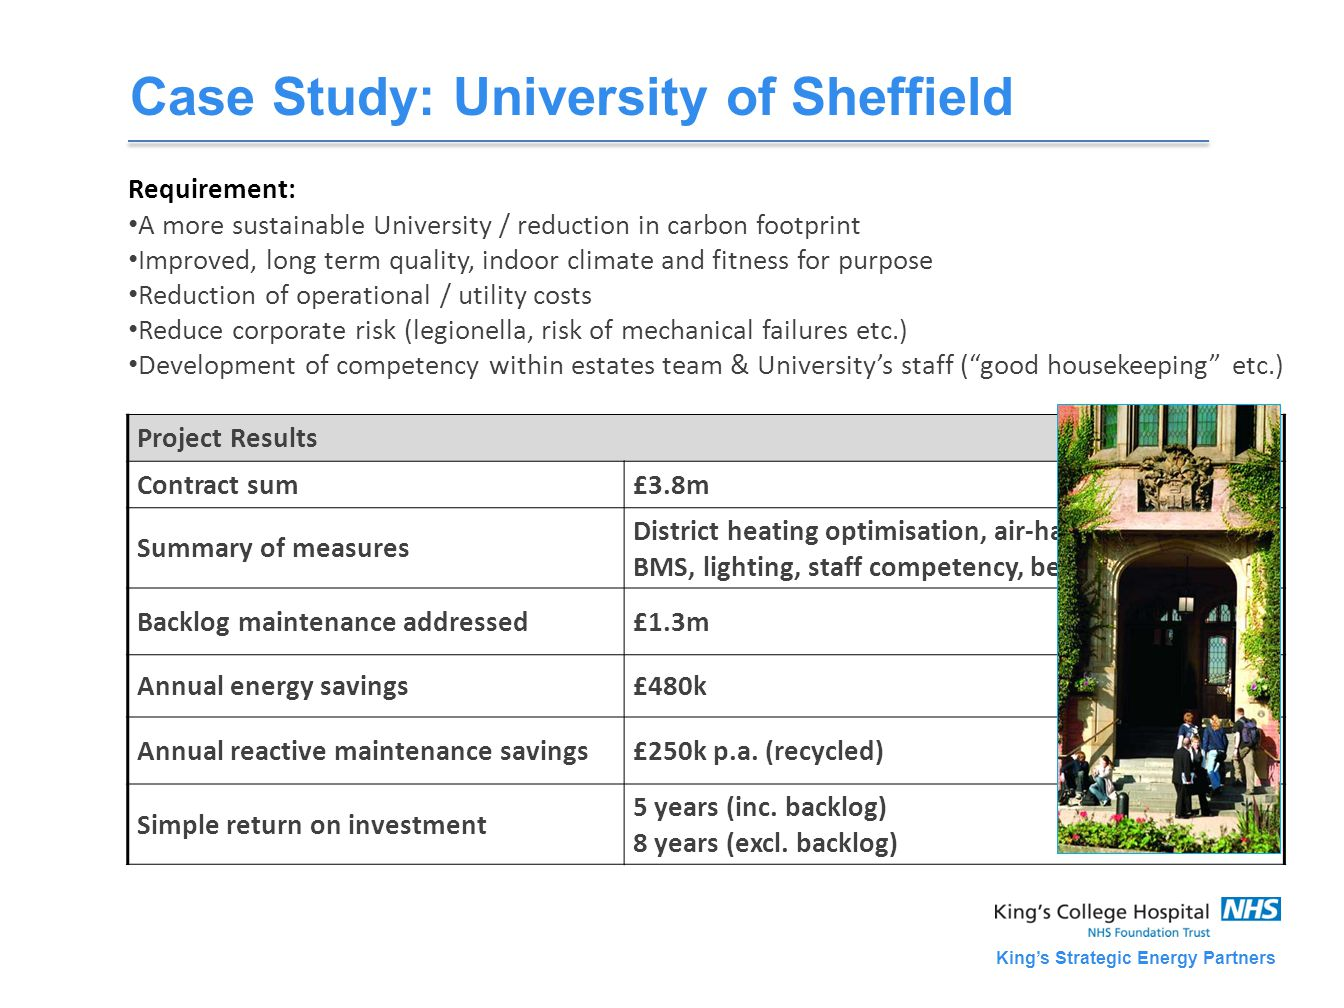 King's Strategic Energy Partners Case Study: University of Sheffield Requirement: A more sustainable University / reduction in carbon footprint Improved, long term quality, indoor climate and fitness for purpose Reduction of operational / utility costs Reduce corporate risk (legionella, risk of mechanical failures etc.) Development of competency within estates team & University's staff ( good housekeeping etc.) Project Results Contract sum£3.8m Summary of measures District heating optimisation, air-handling units, BMS, lighting, staff competency, behaviour-change Backlog maintenance addressed£1.3m Annual energy savings£480k Annual reactive maintenance savings£250k p.a.